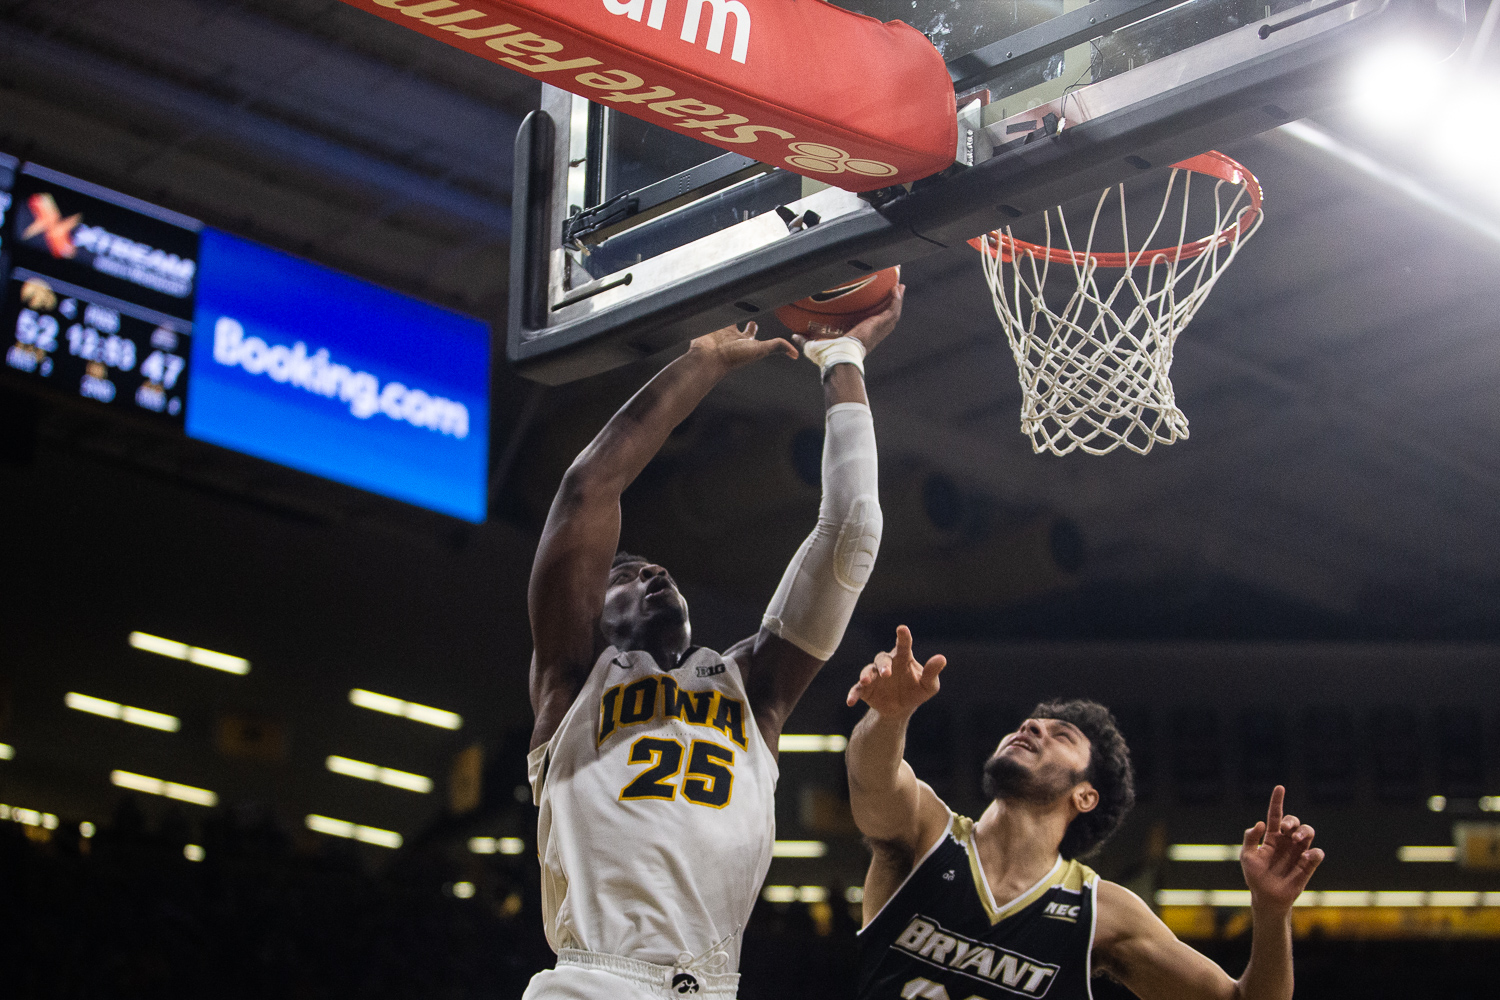 Iowa forward Tyler Cook goes up for a basket during the mens basketball game against Bryant University on Saturday, December 29, 2018. The Hawkeyes defeated the Bulldogs 72-67. (Wyatt Dlouhy/The Daily Iowan)